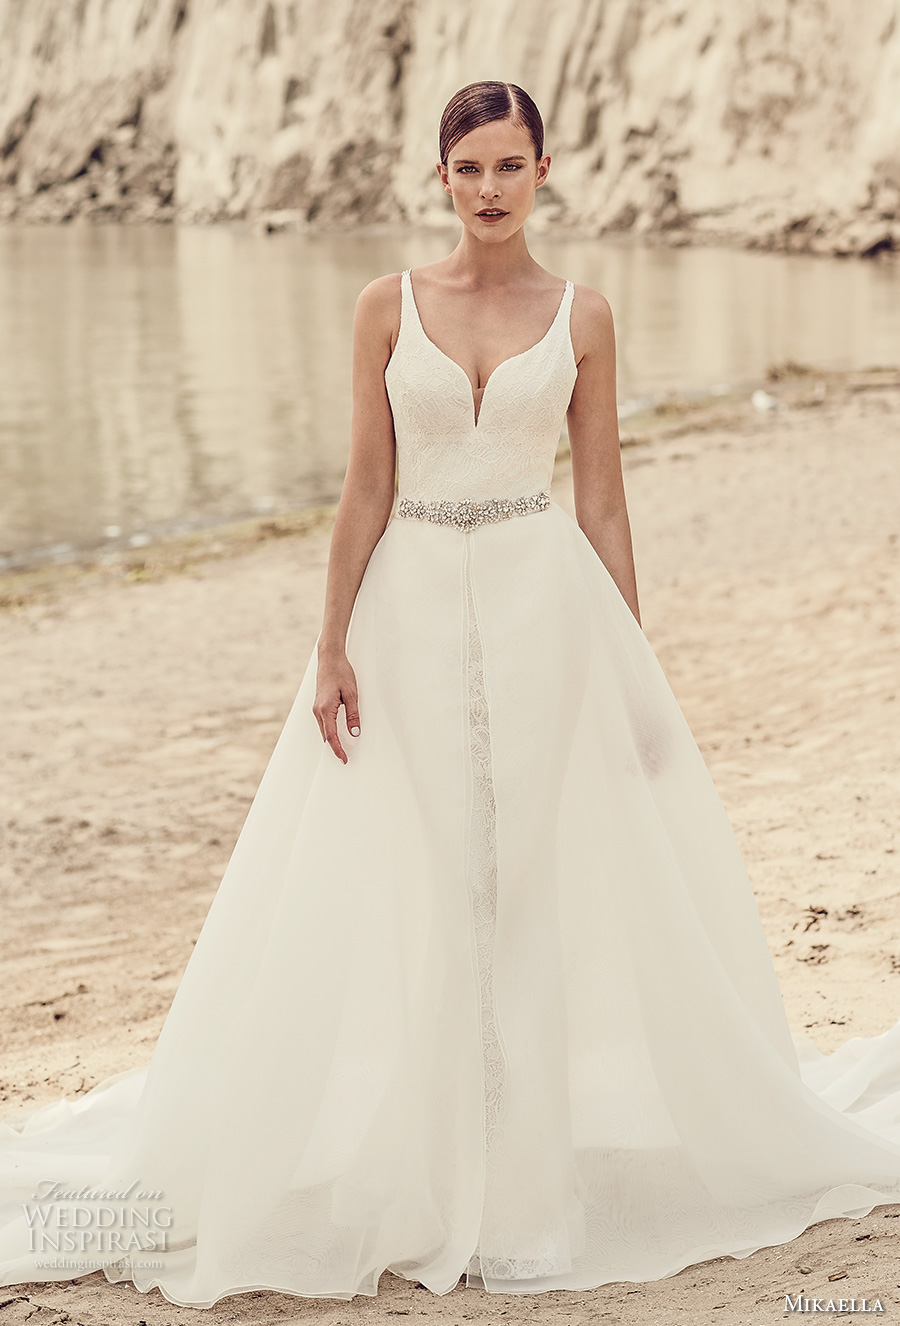 mikaella spring 2017 bridal sleeveless deep plunging sweetheart neckline full embroidered elegant fit and flare wedding dress a  line overskirt cross straps back sweep train (2120) mv